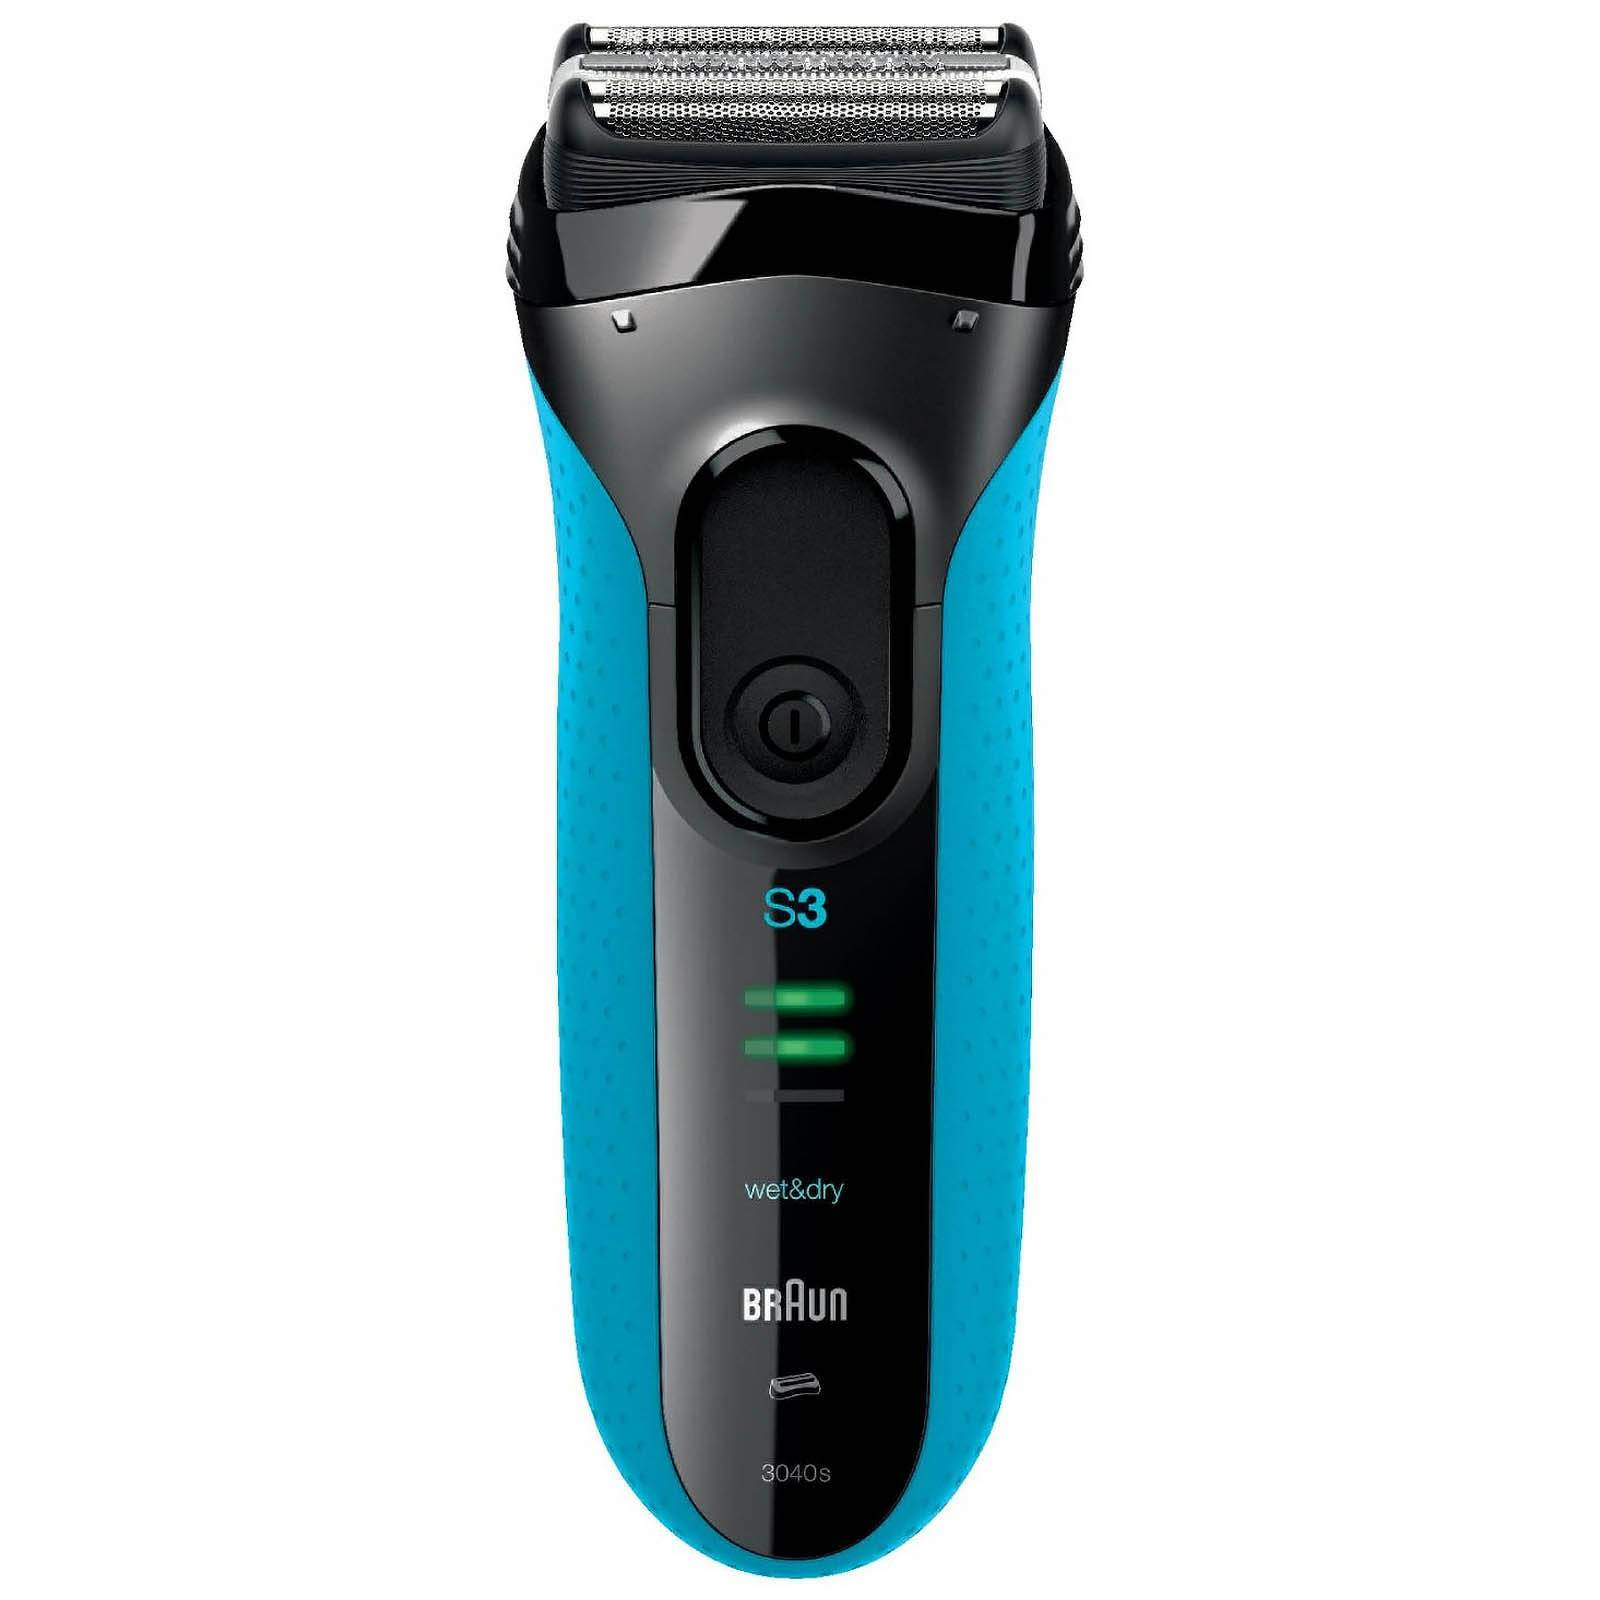 Braun - Series Shavers Series 3 3040s Wet and Dry Shaver for Men